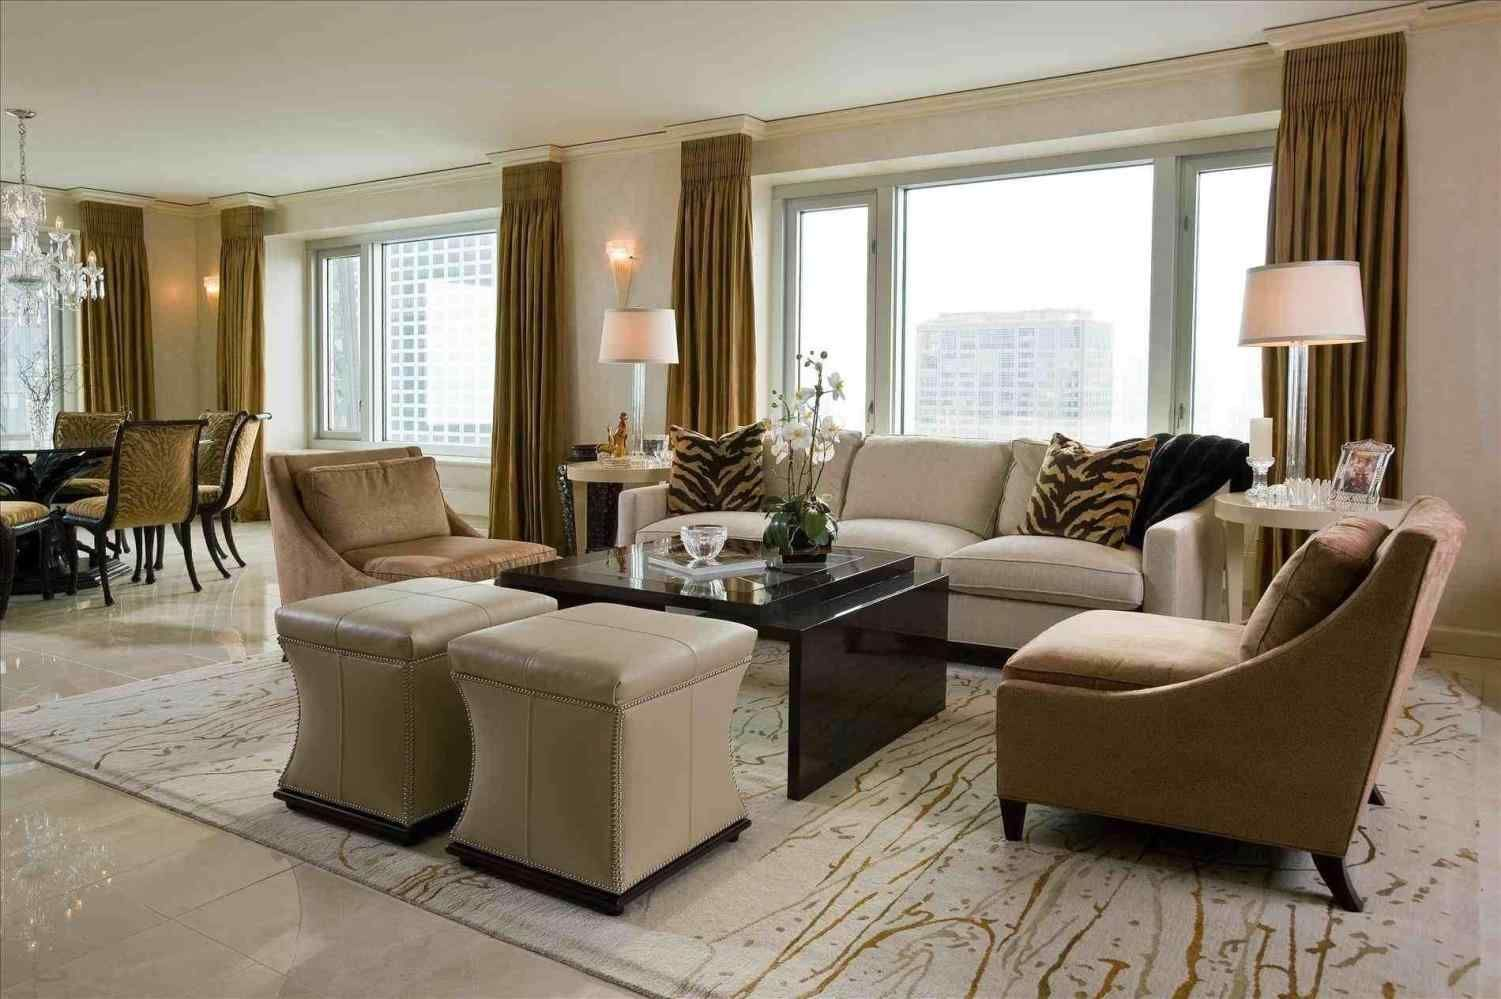 Furniture In A 11 X 10 Living Room Yahoo Image Search Results Rectangular Living Rooms Livingroom Layout Small Living Room Design